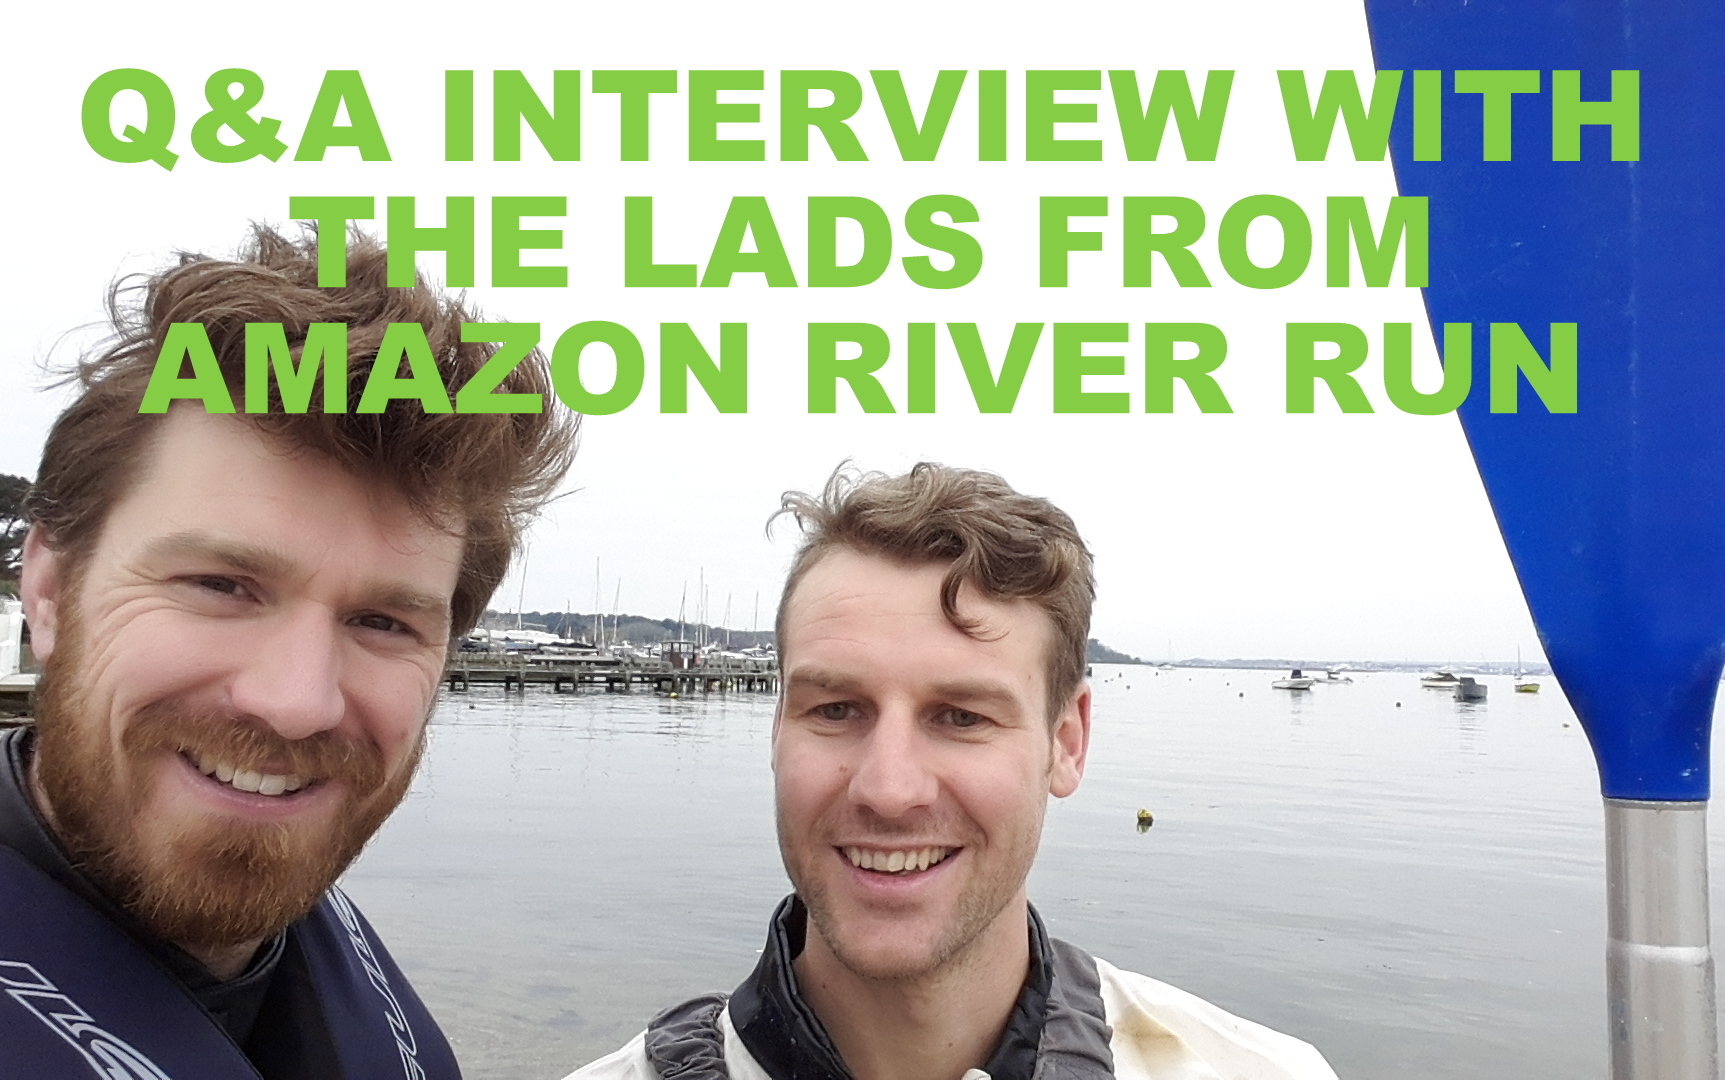 Q&A INTERVIEW WITH AMAZON RIVER RUN